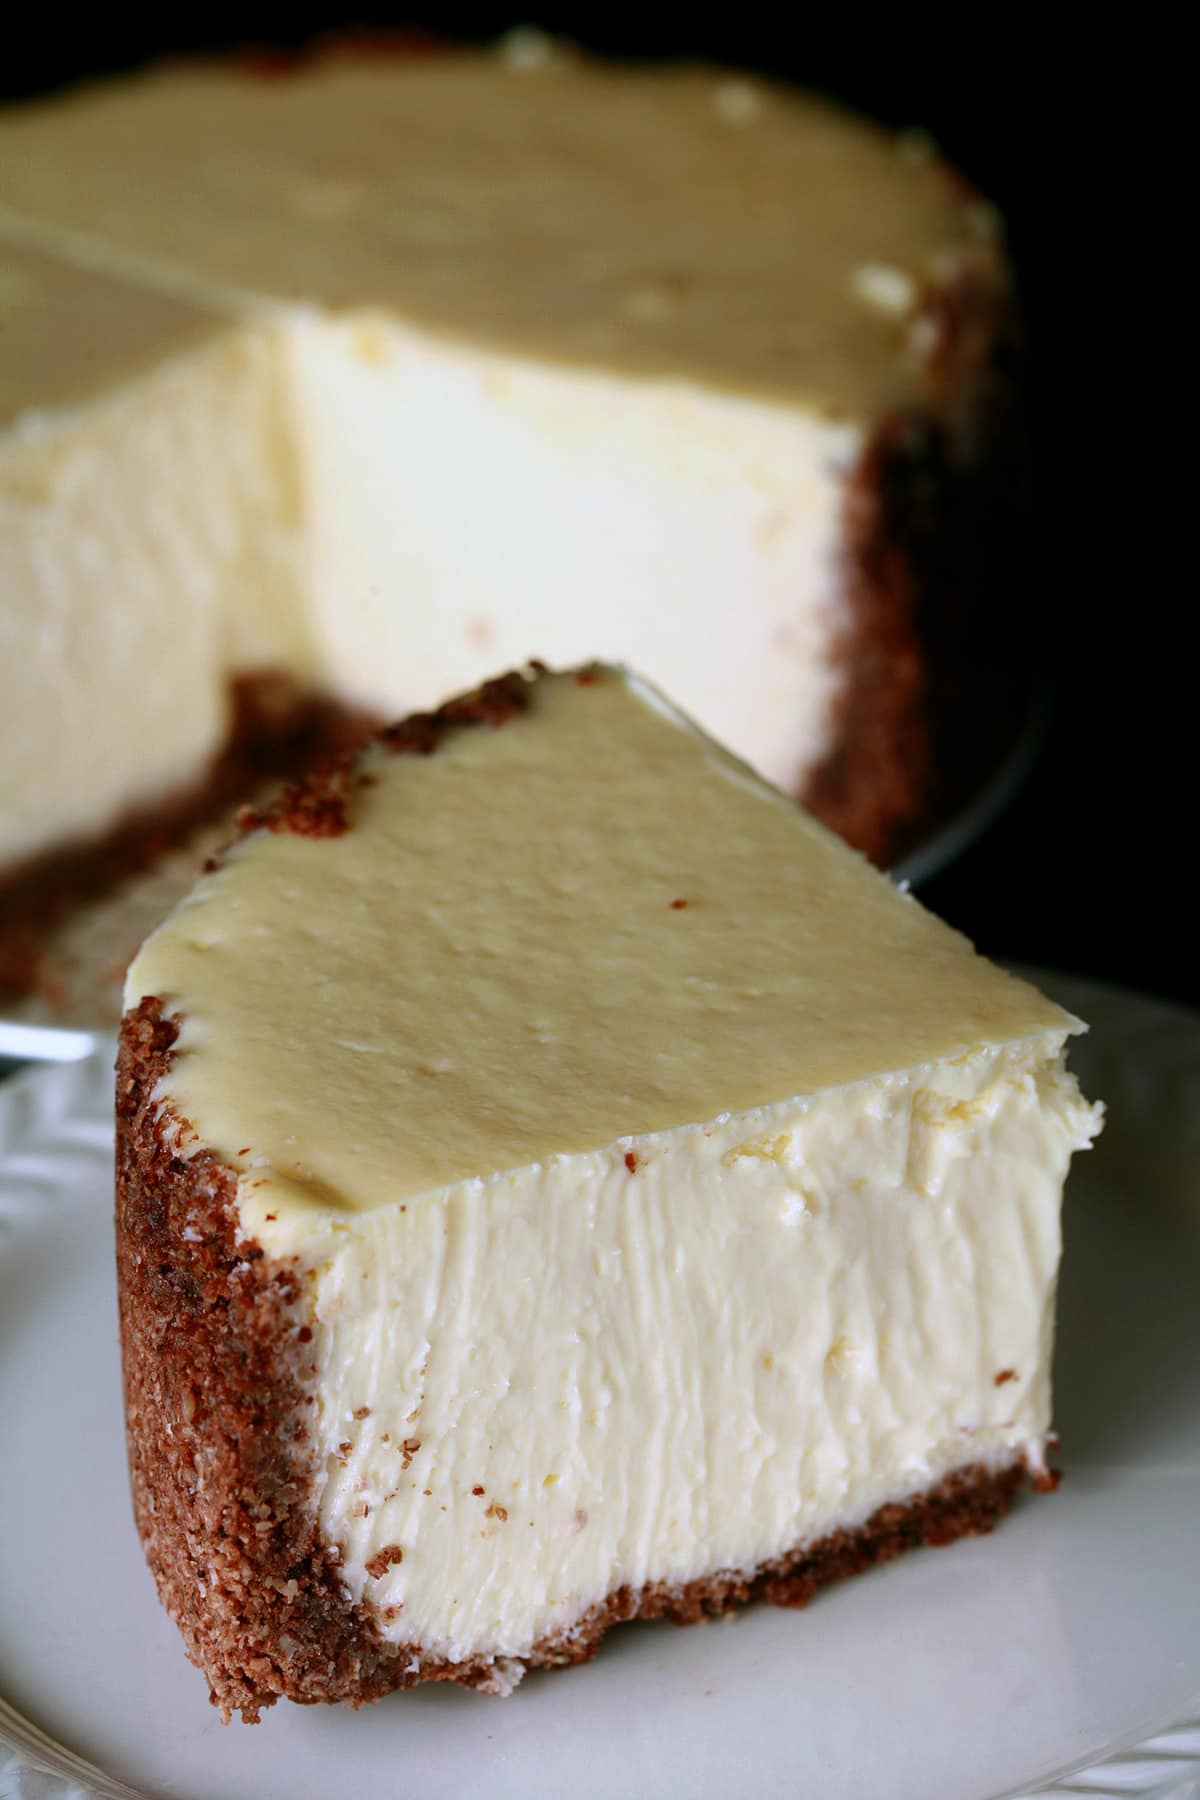 A close up view of a creamy 6 inch vanilla cheesecake.